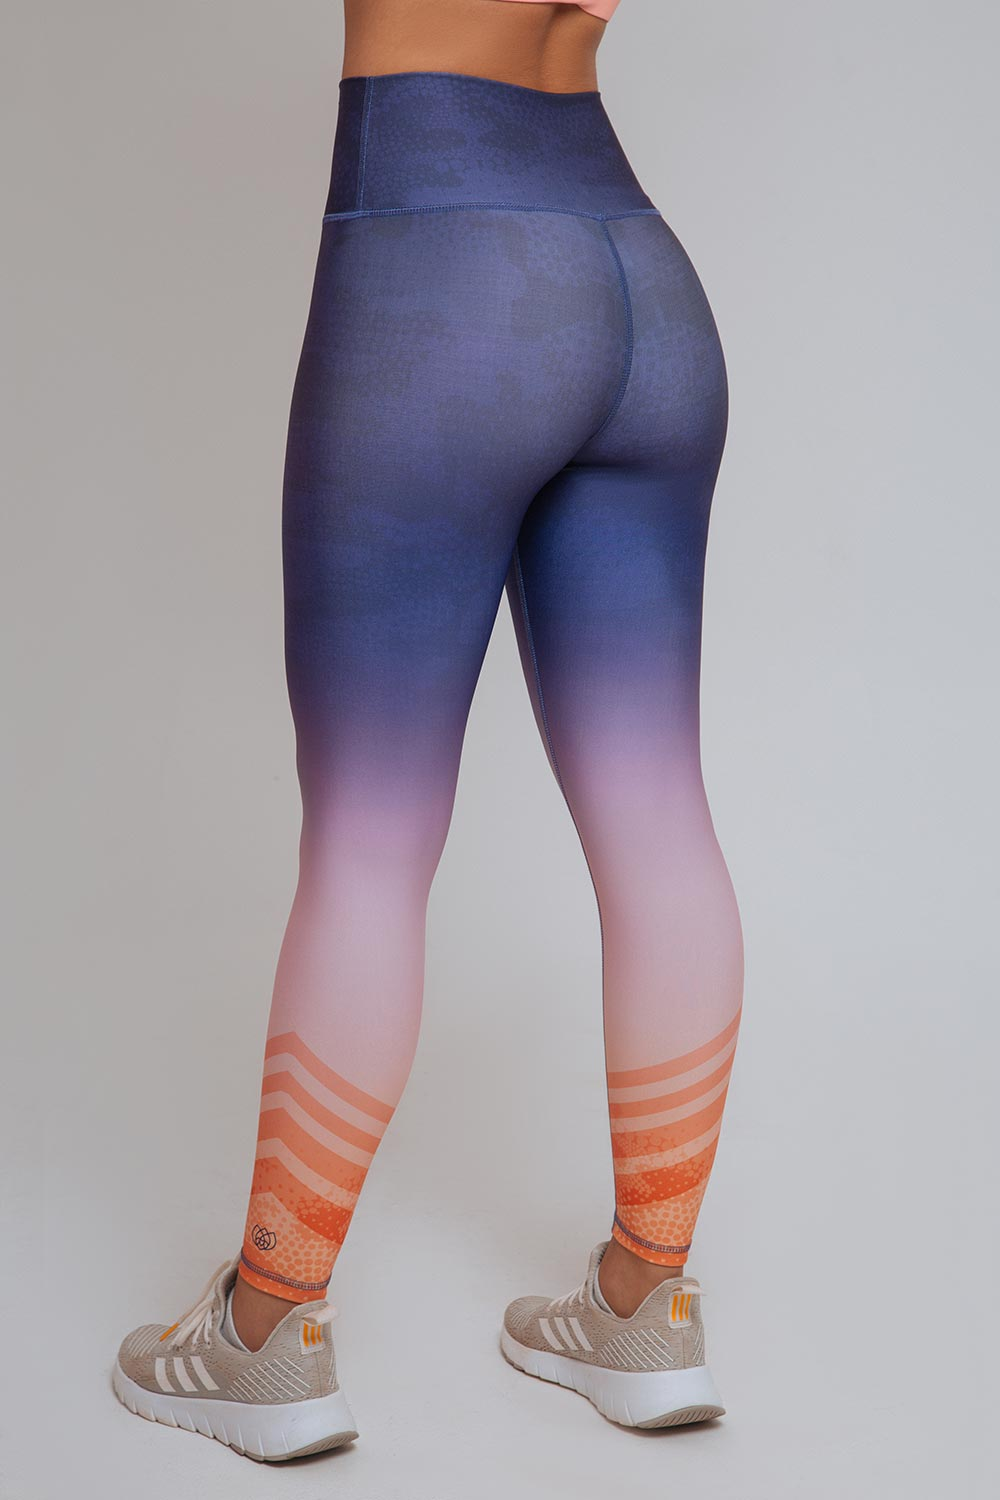 STEAL MY HEART HISE RISE LEGGING